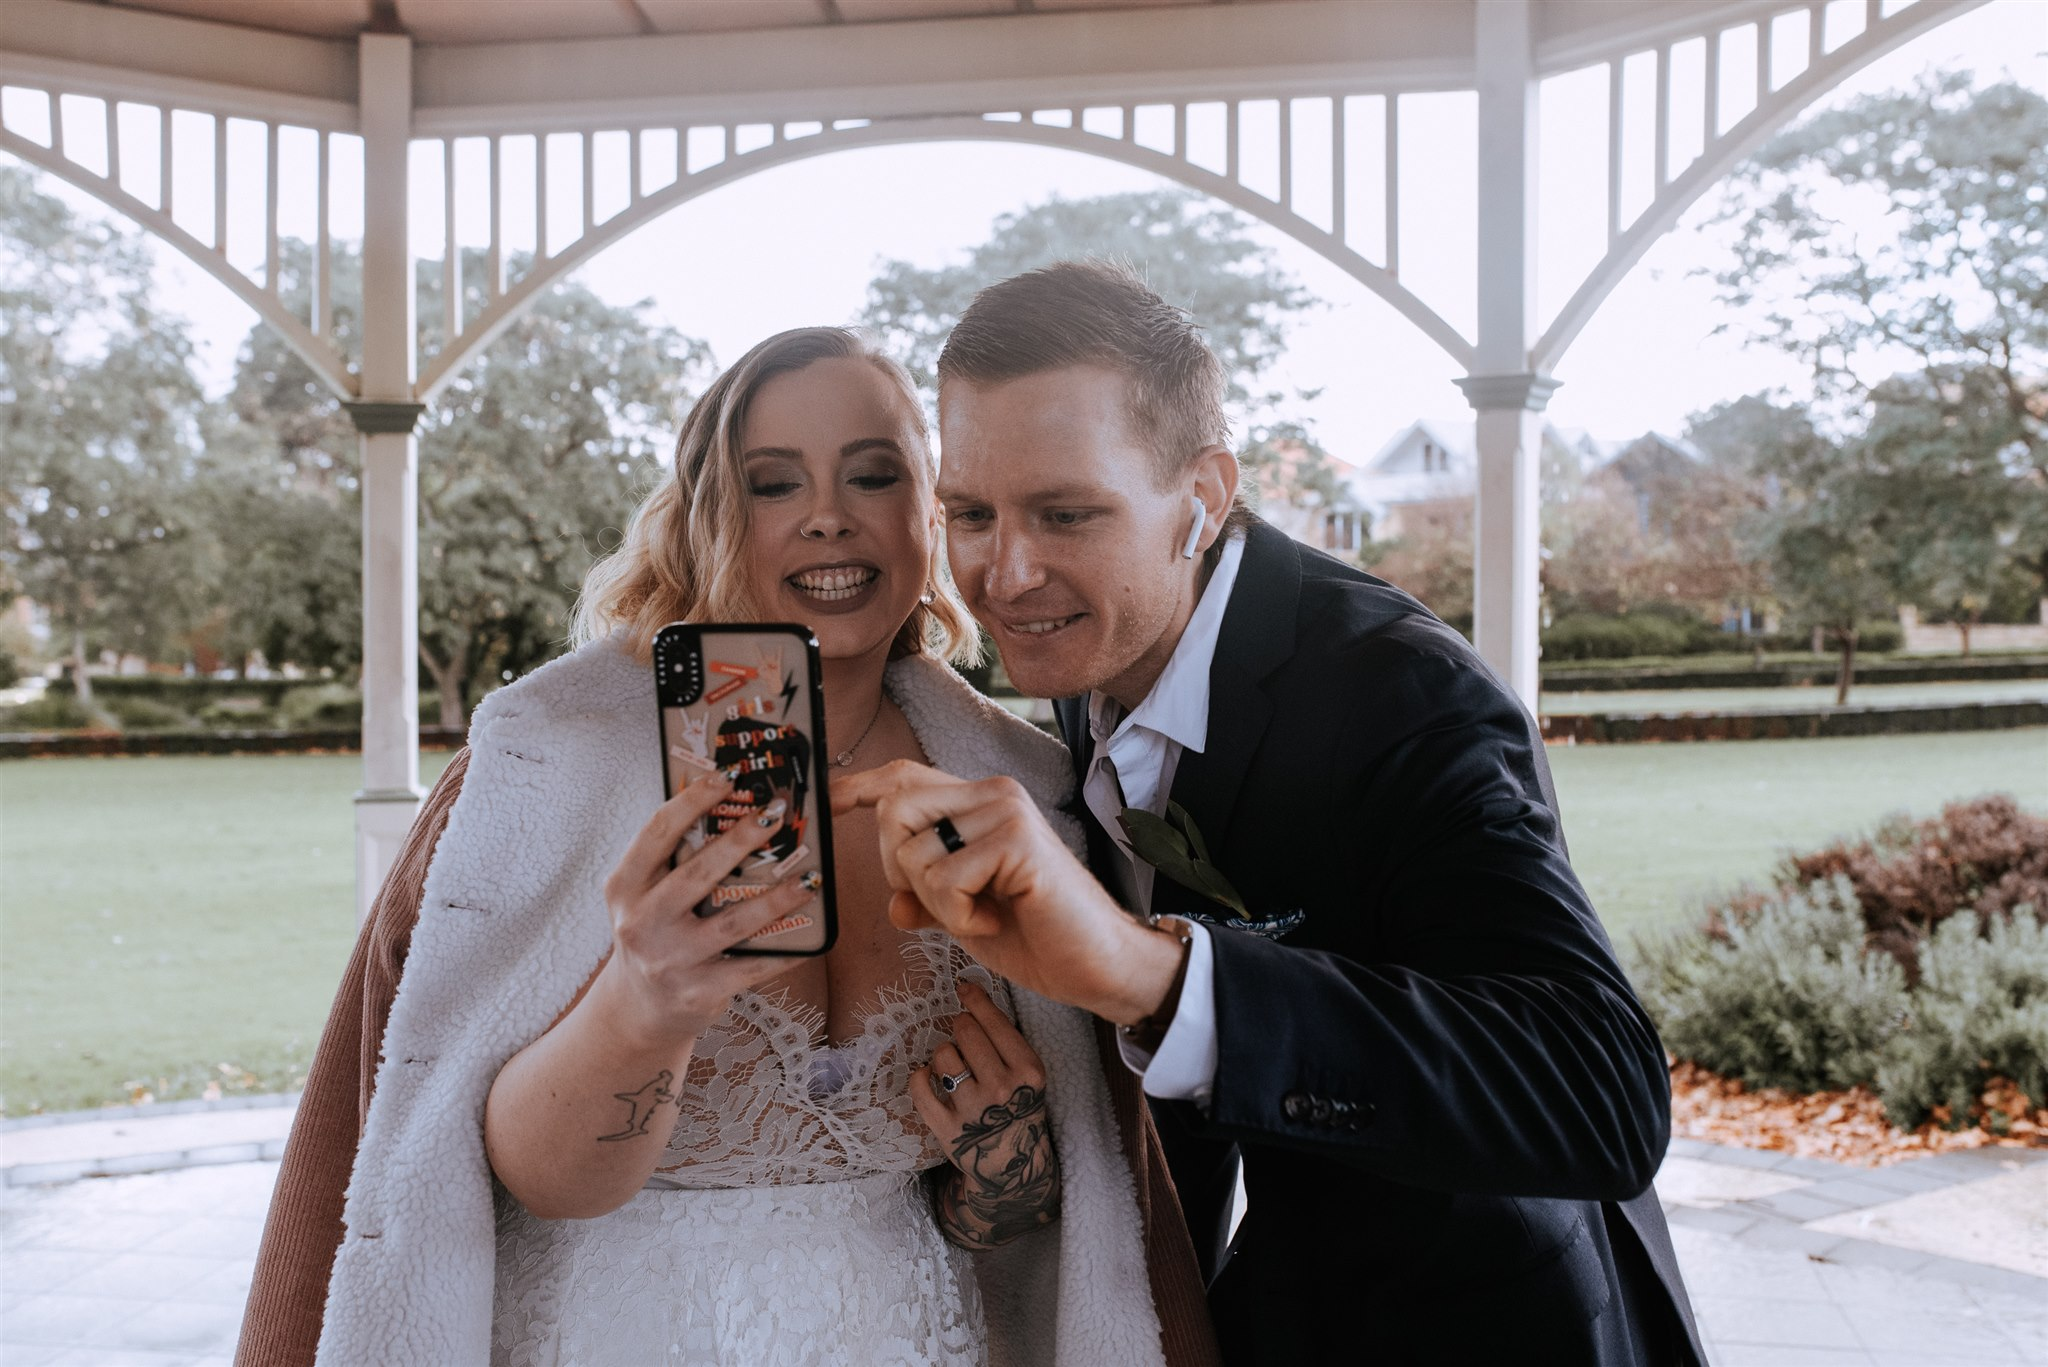 Woman in white wedding dress with veil smiling and holding a mobile phone with man in a navy jacket, smiling and pointing at the mobile phone